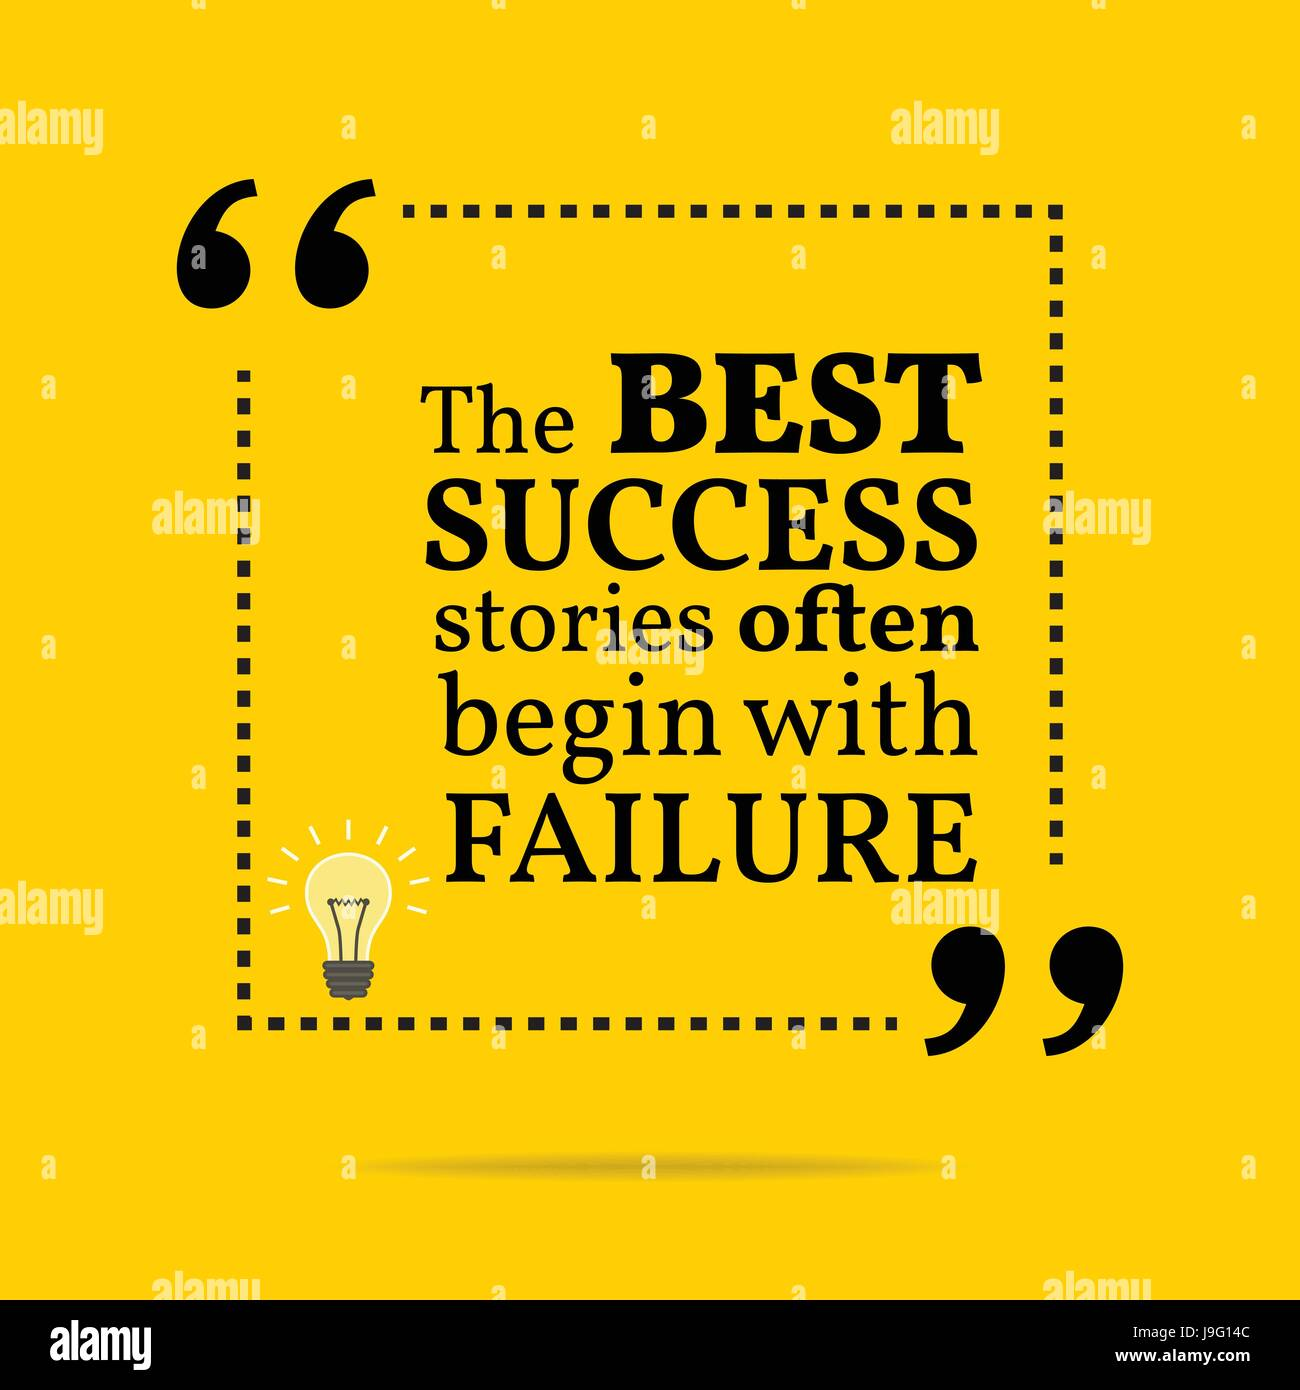 C Stock Quote: Inspirational Motivational Quote. The Best Success Stories